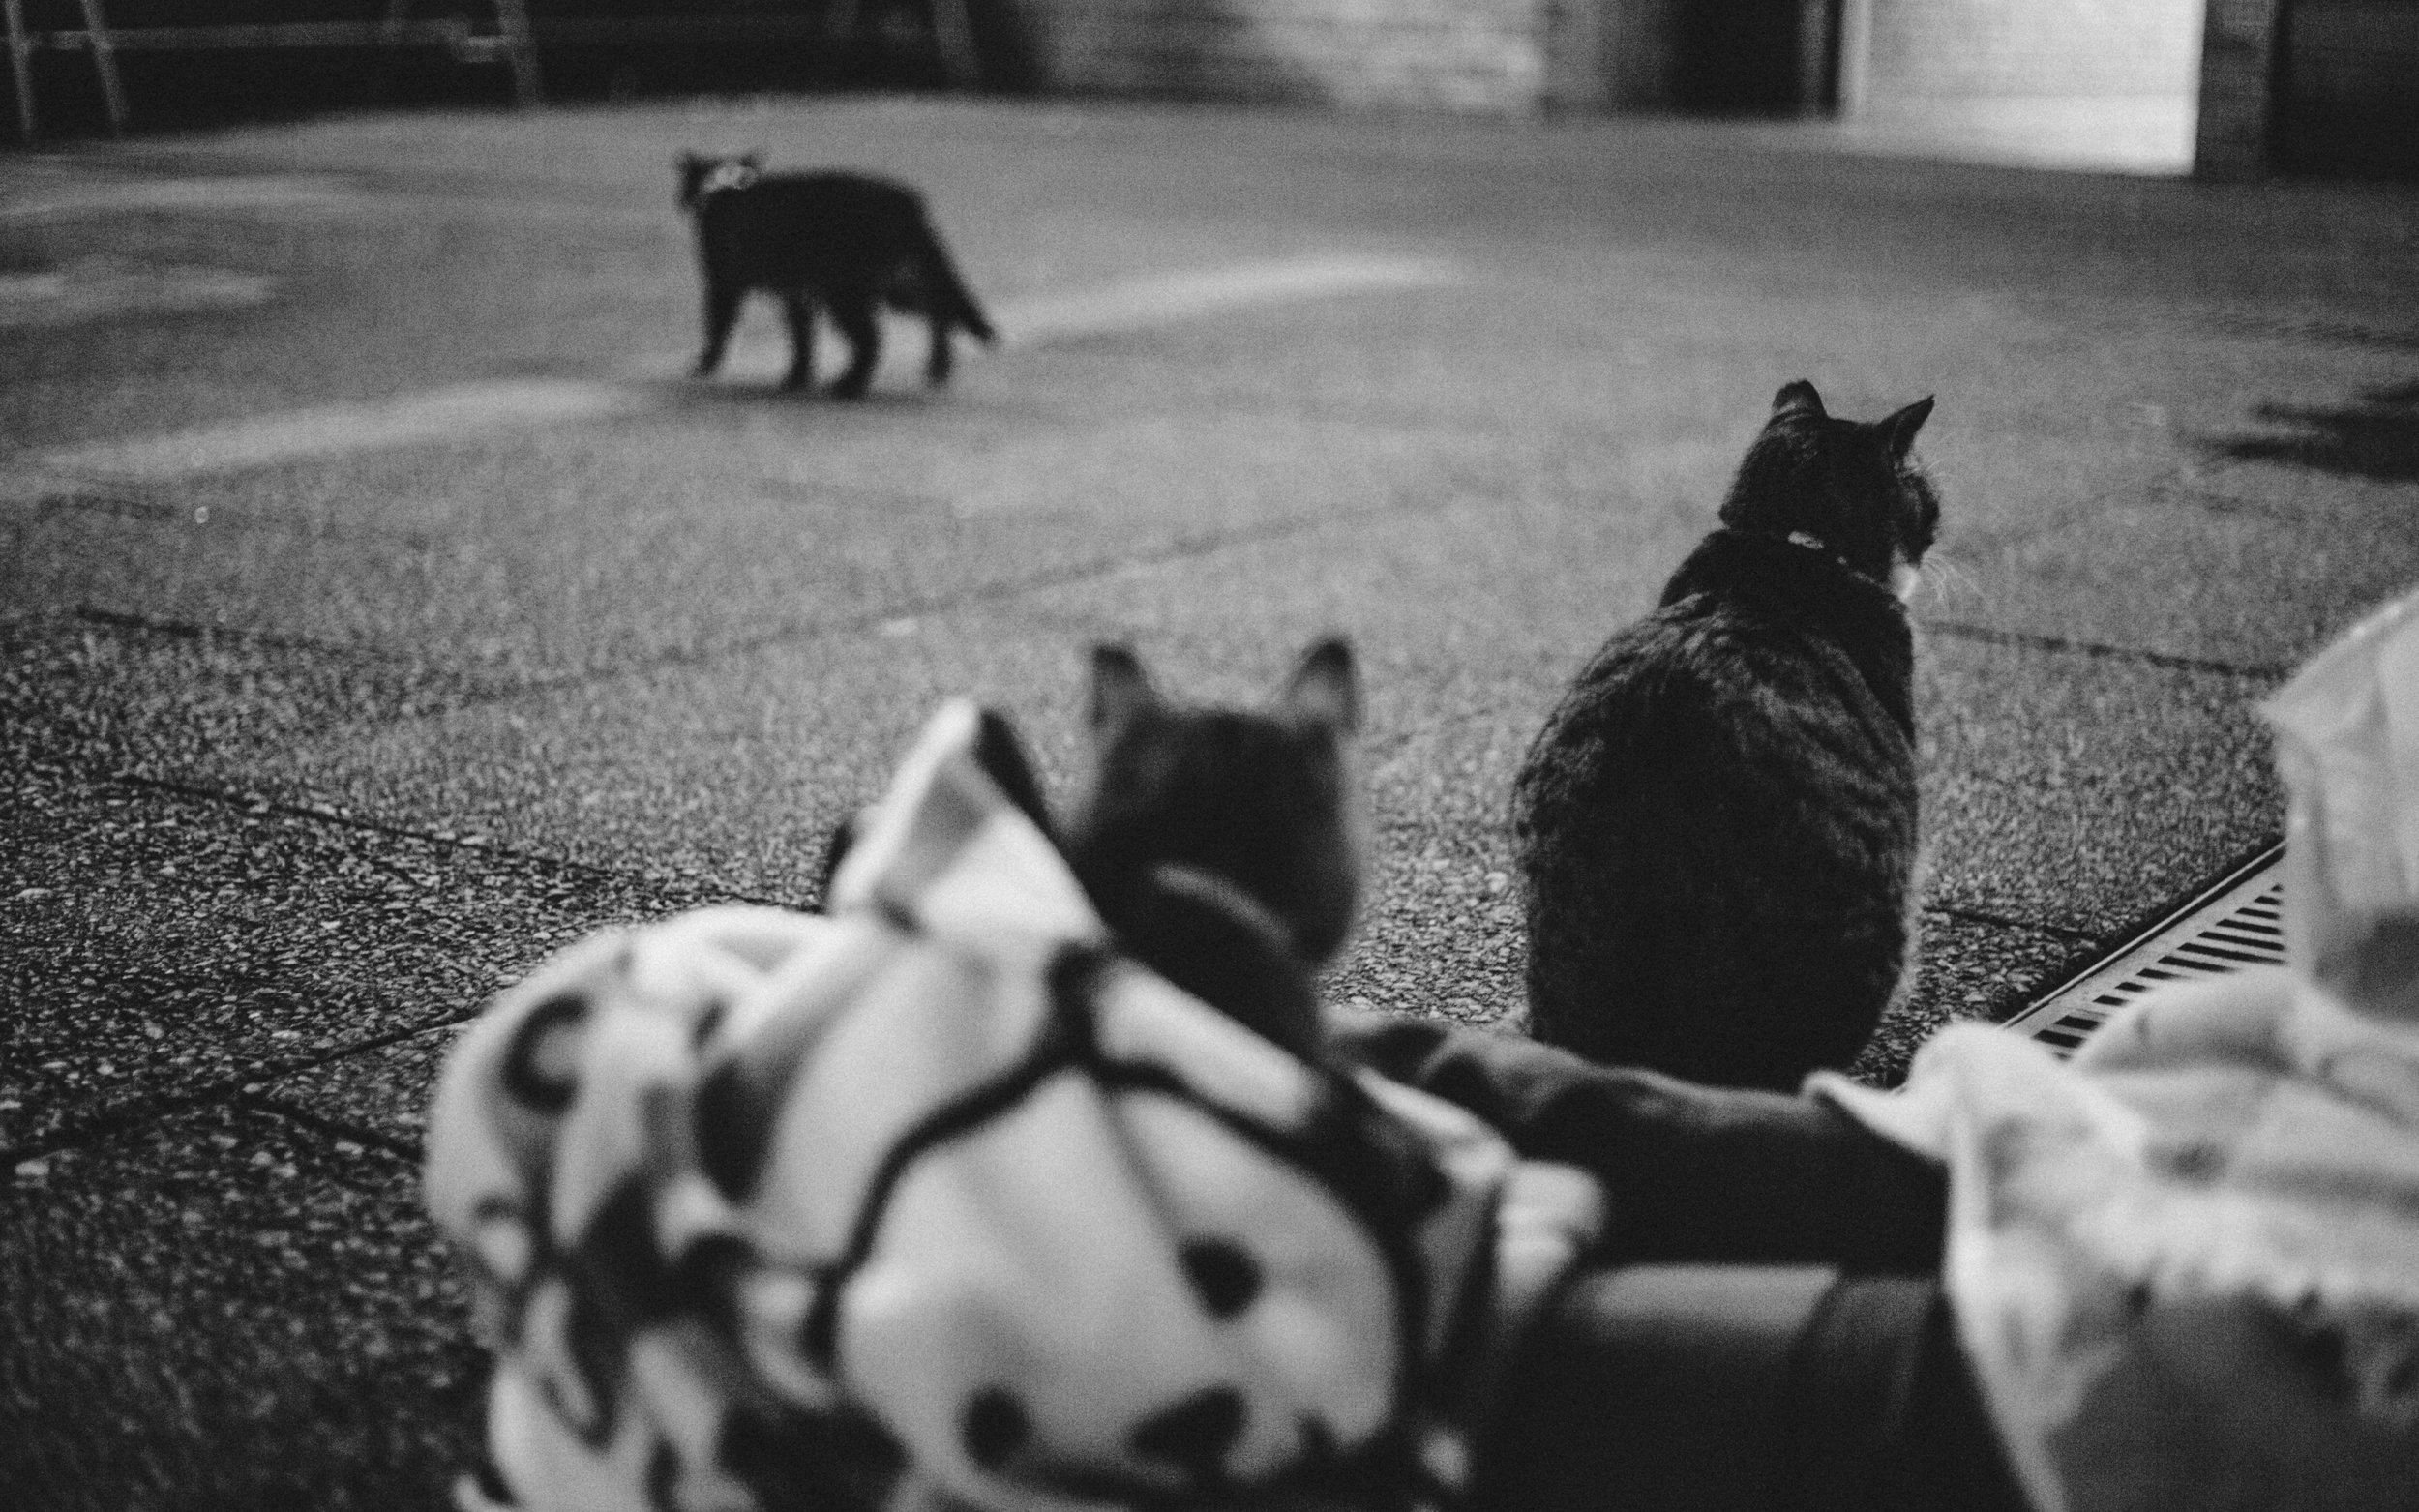 Cats waiting for their turn to snuggle in blankets.